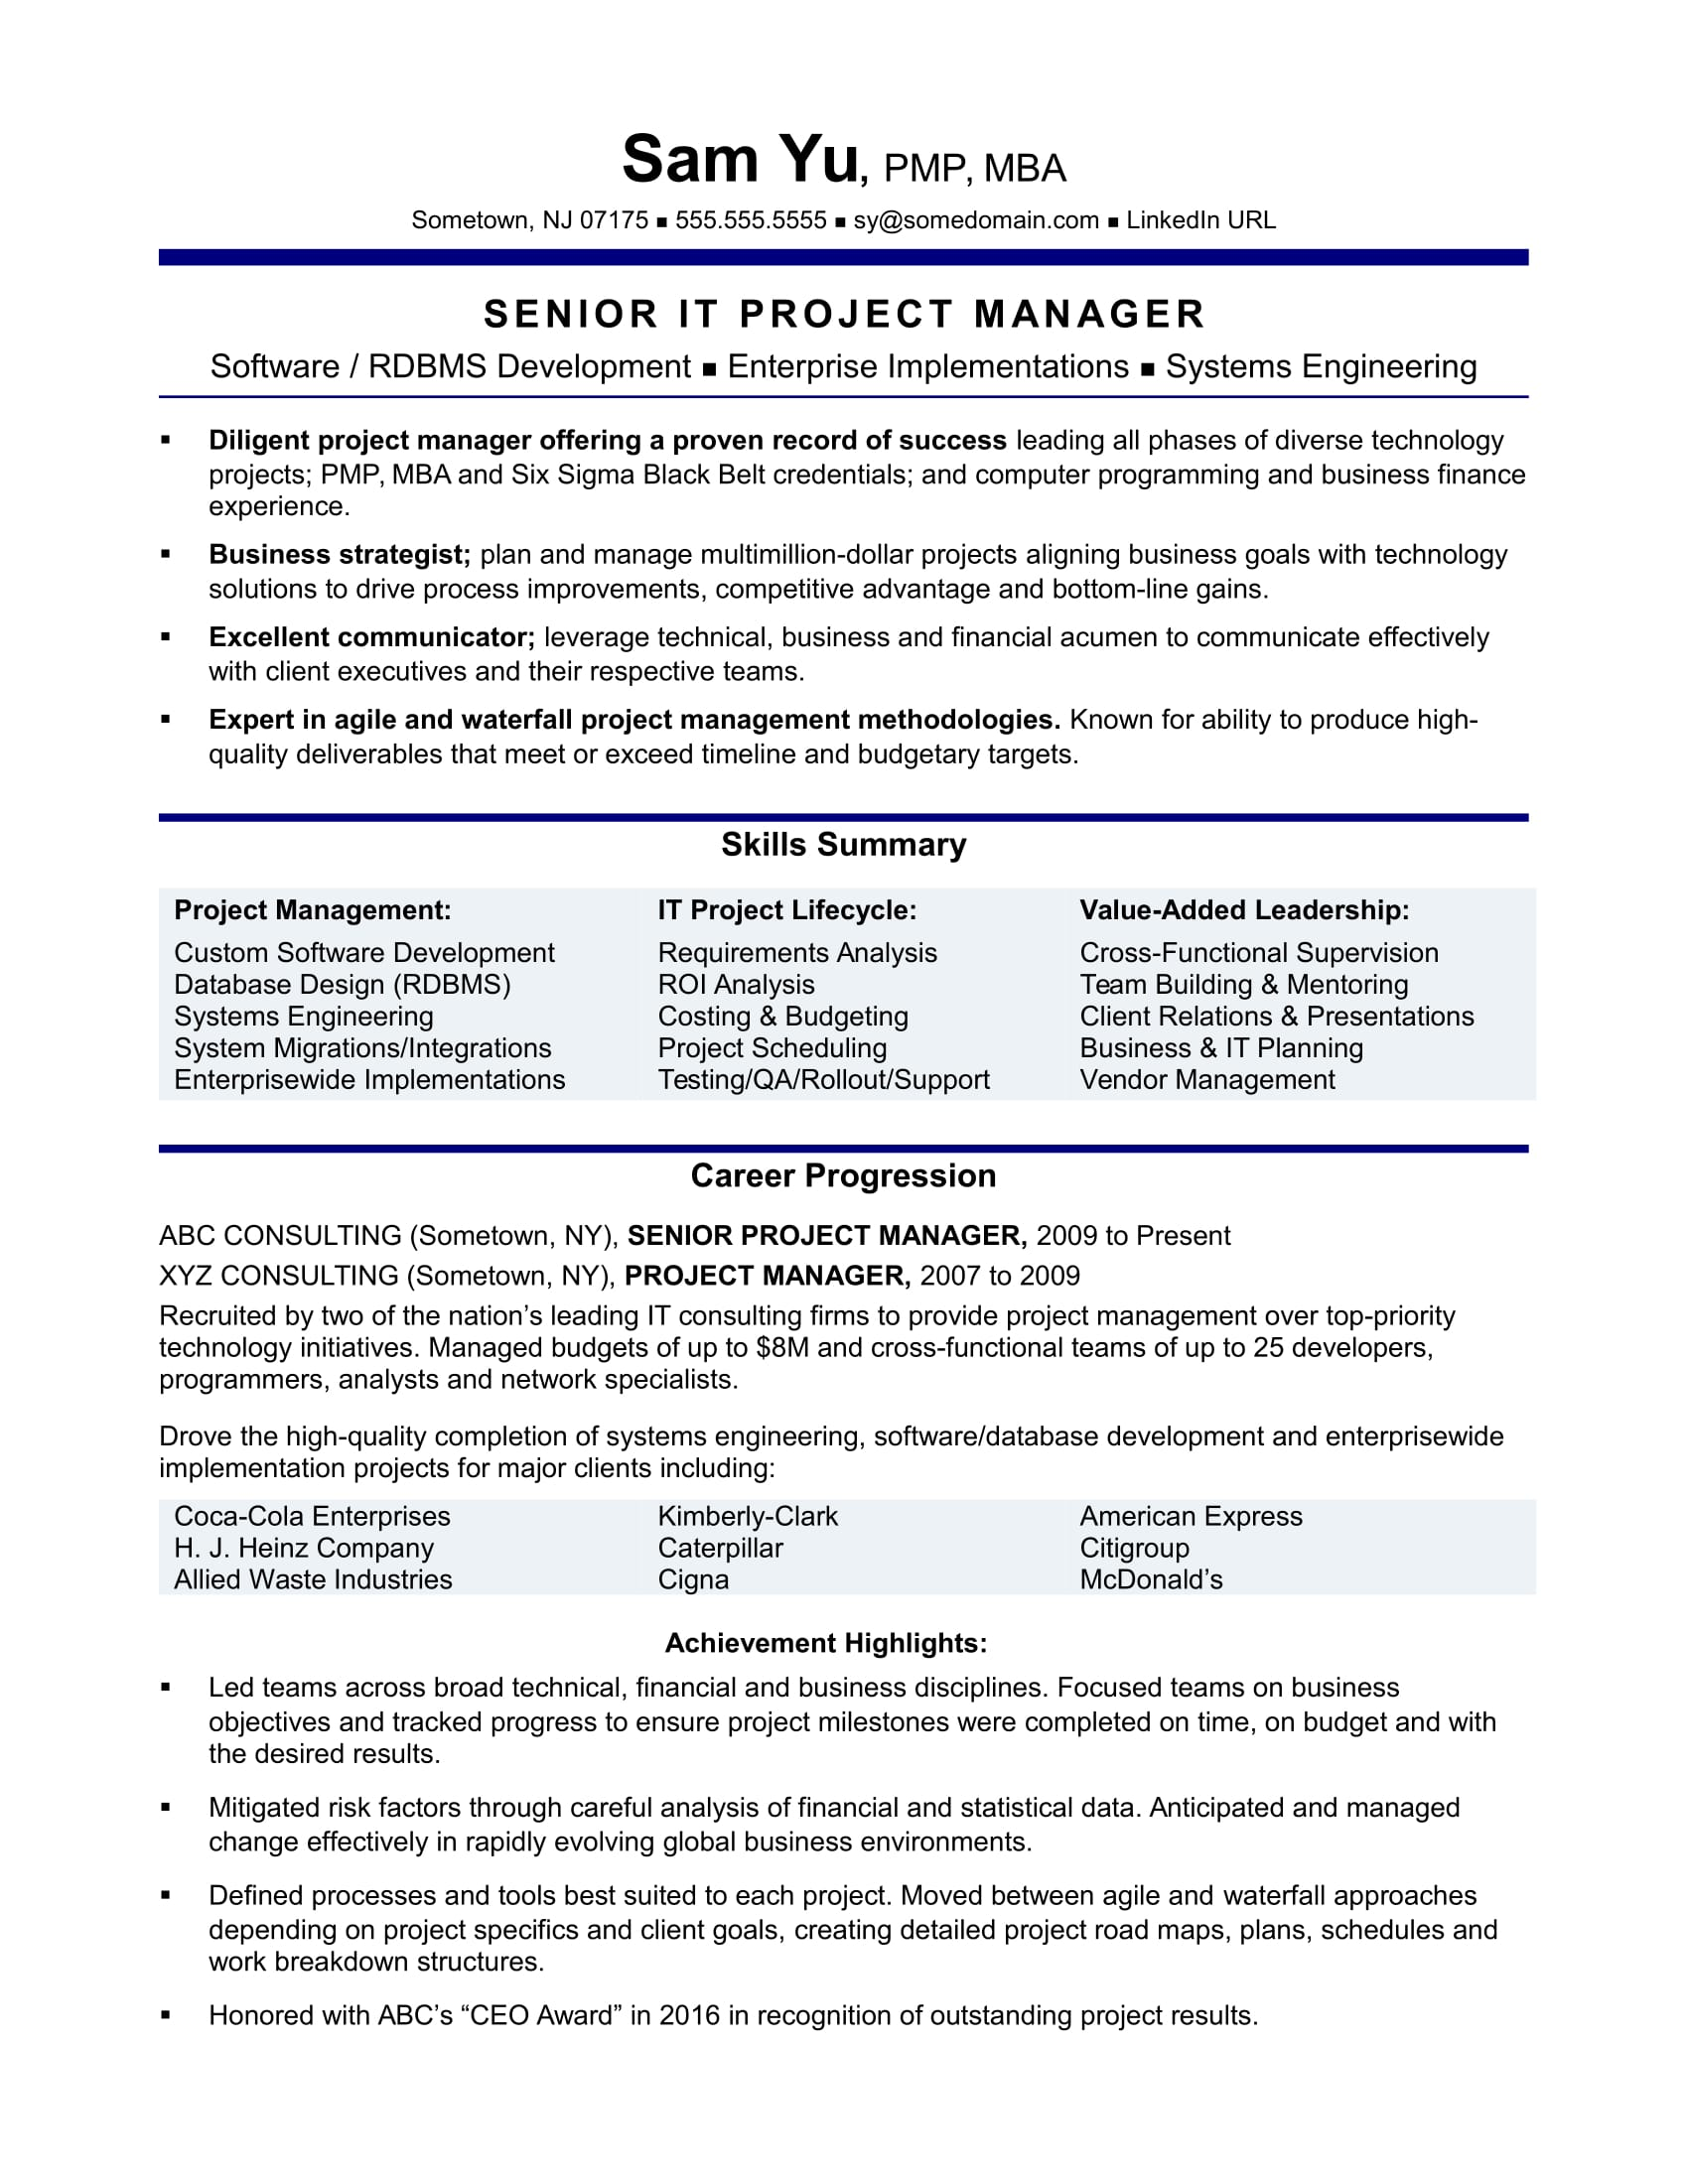 experienced it project manager resume sample monster senior restaurant service some Resume Senior Project Manager Resume